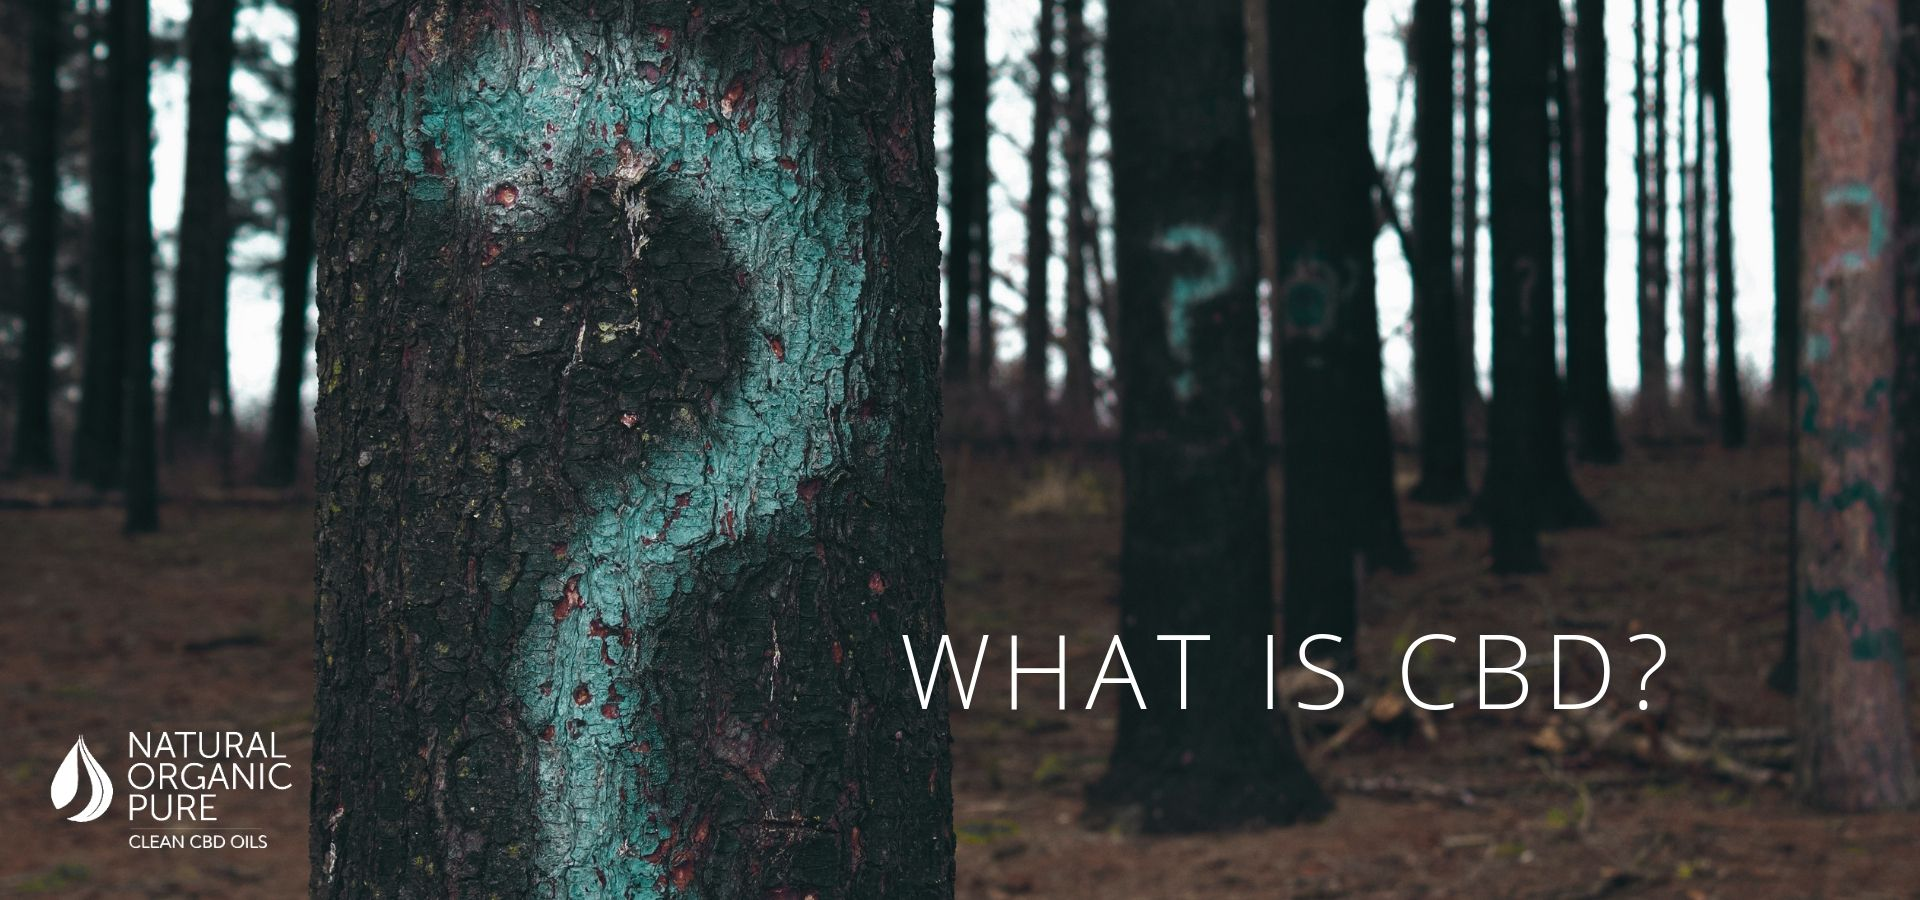 Tree trunk with question mark sprayed on and title_What is CBD? by natural organic pure clean cbd oils